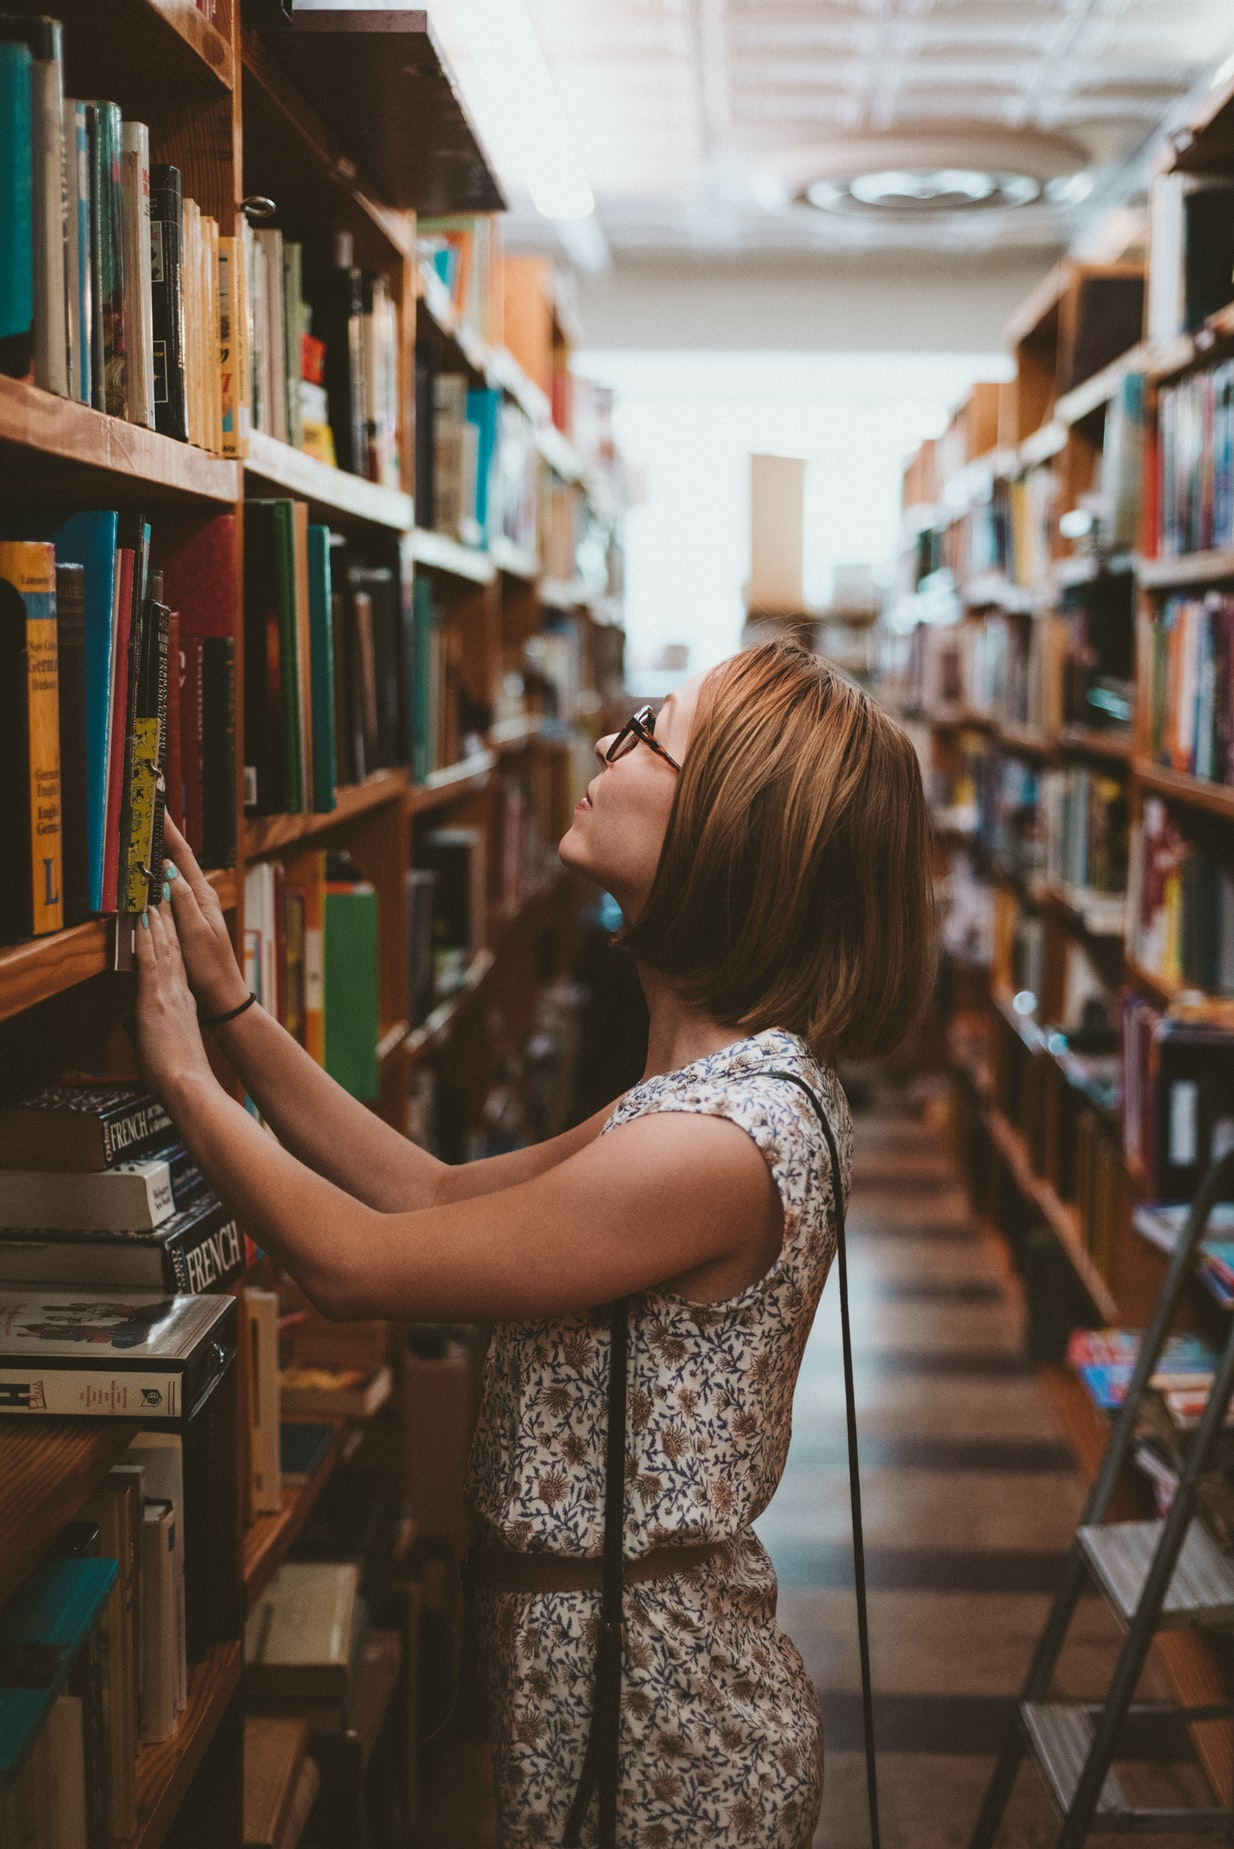 Decorative photo of a woman looking up at a high shelf of books in a library